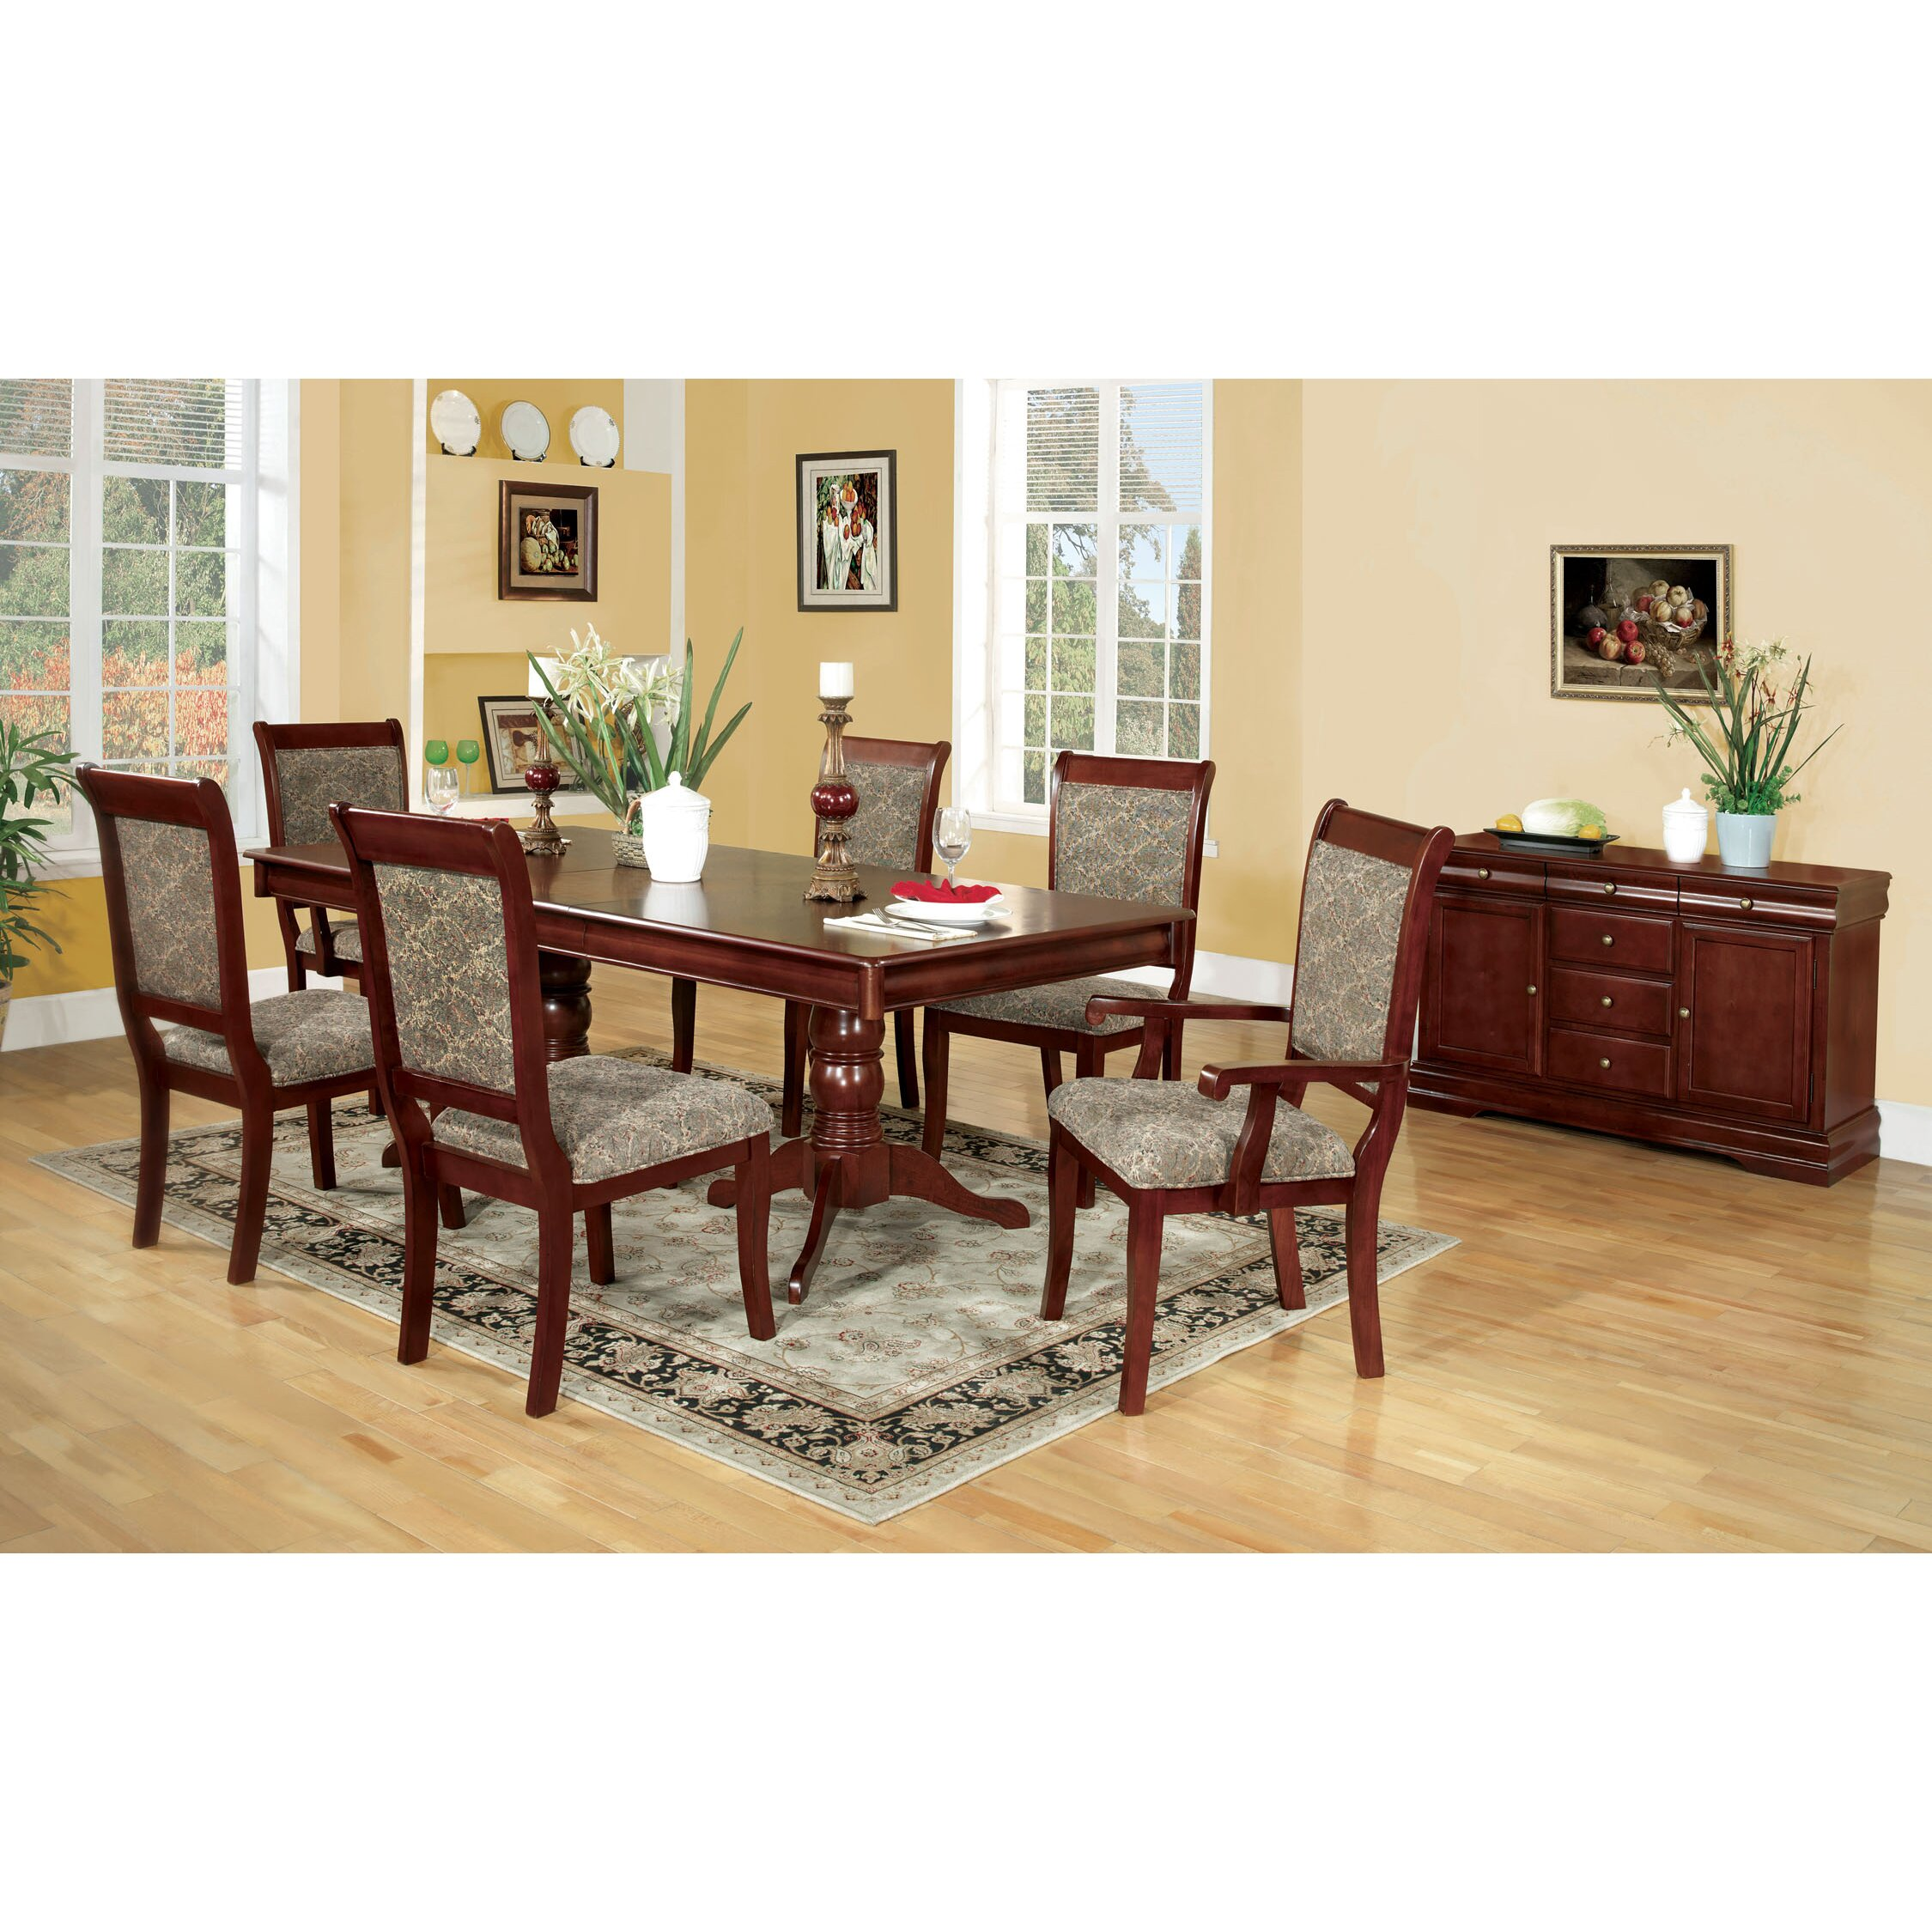 Hokku designs nikolas 7 piece dining set reviews wayfair for 7 piece dining set